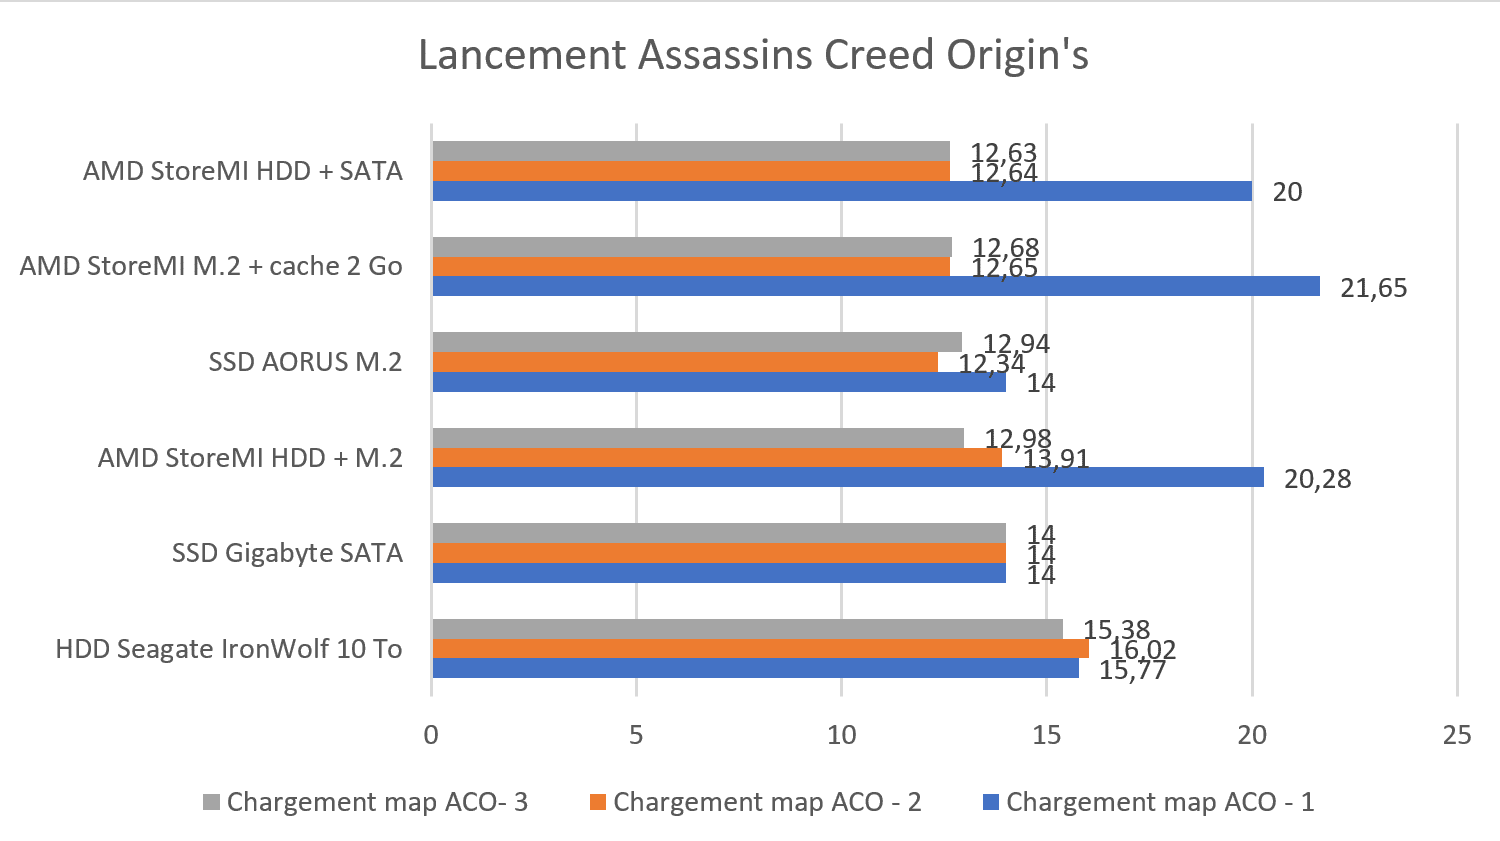 Test AMD StoreMI démarrage jeu vidéo Assassins Creed Origin's